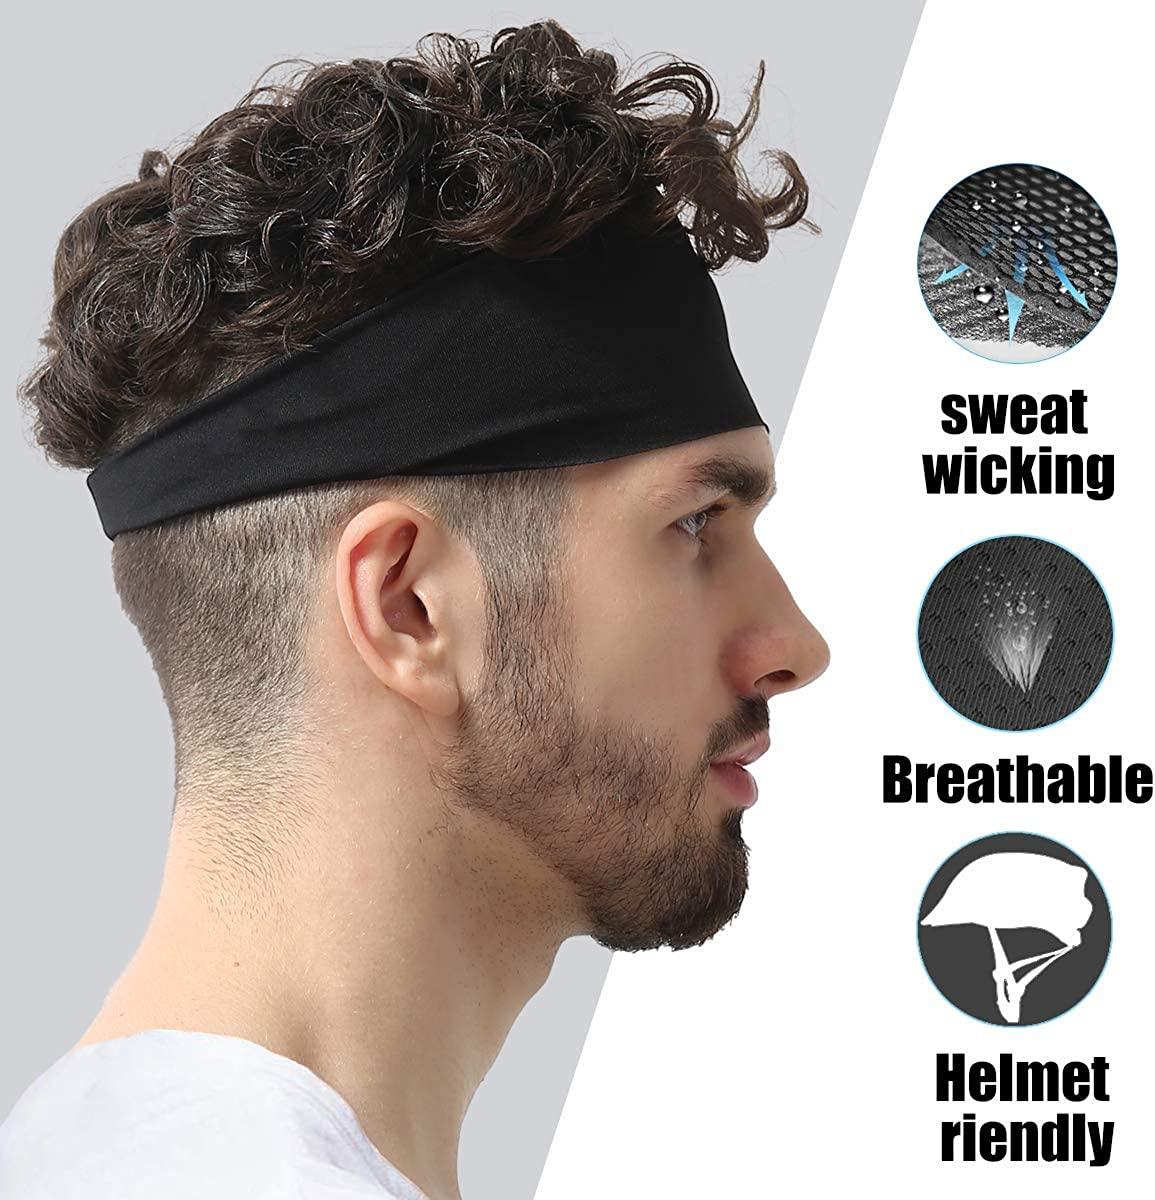 3 Pack 9ABOY Headbands for Men and Women Running Sweat Head Bands for Sports Stretchy Lightweight Breathable Moisture Wicking Hairband Tennis Football Basketball Yoga Fitness Riding Cycling Hiking